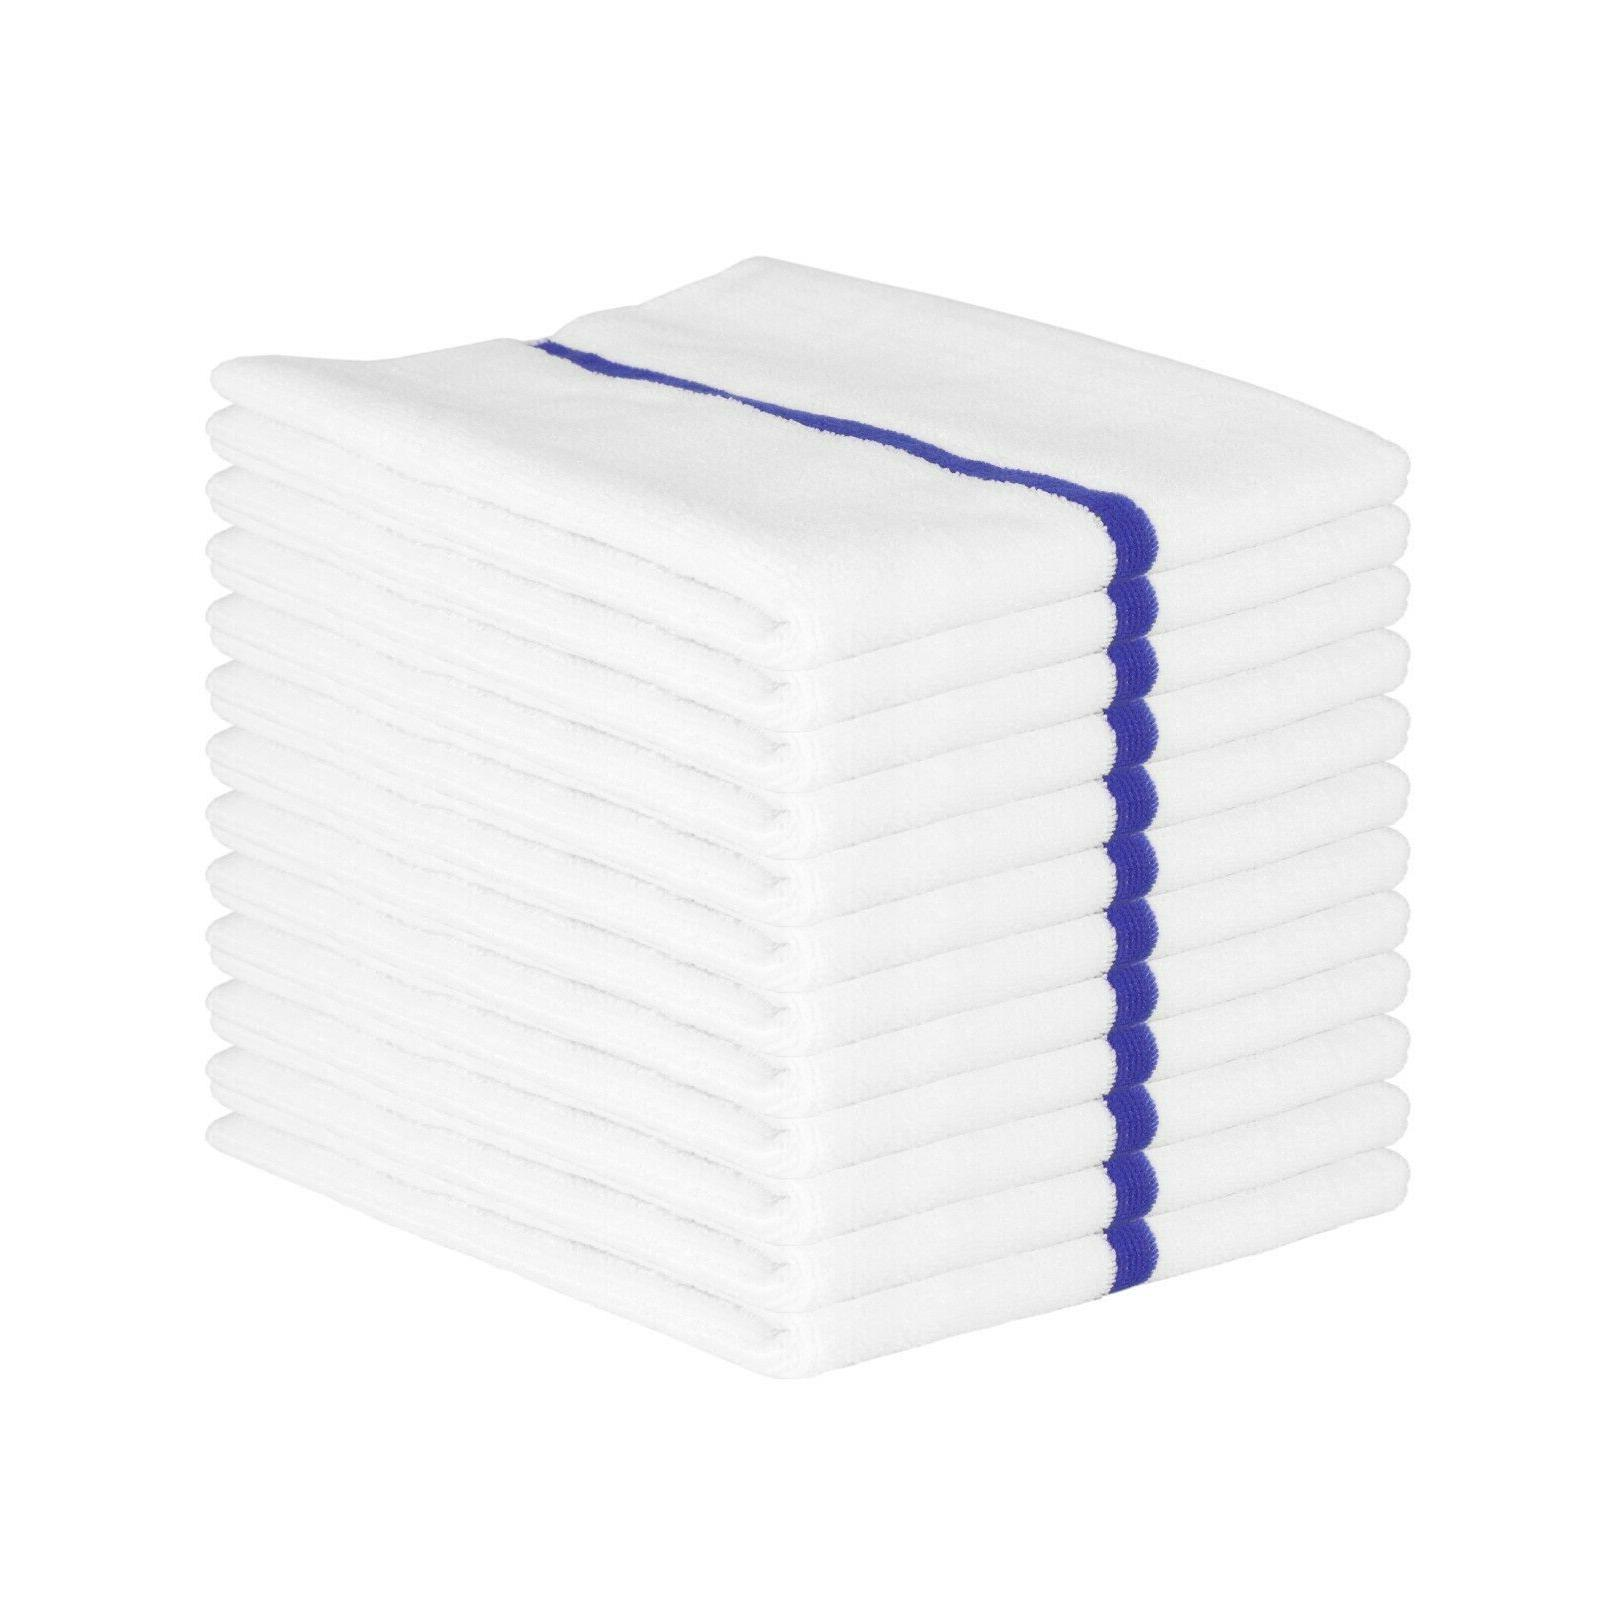 12 Pack of Microfiber Bar Mop Cleaning Towels 15 x 18 Stripe